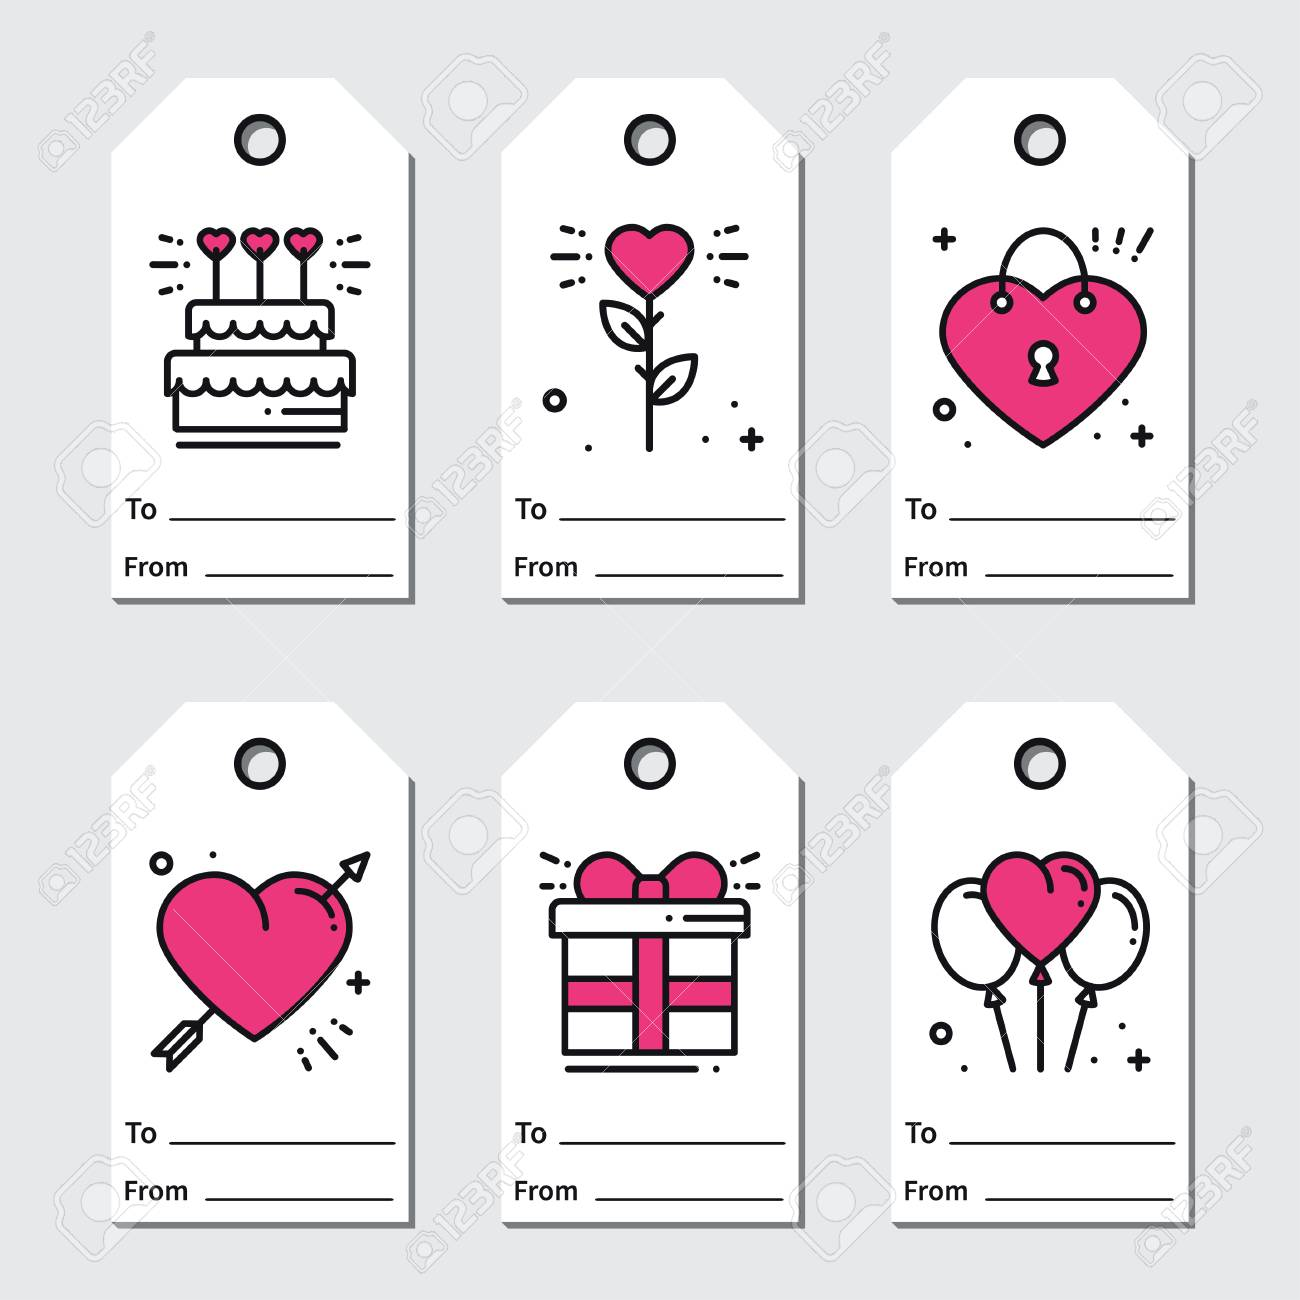 graphic about Valentine's Day Tags Printable called St Valentines working day present tags. Printable tags selection. Delight in,..